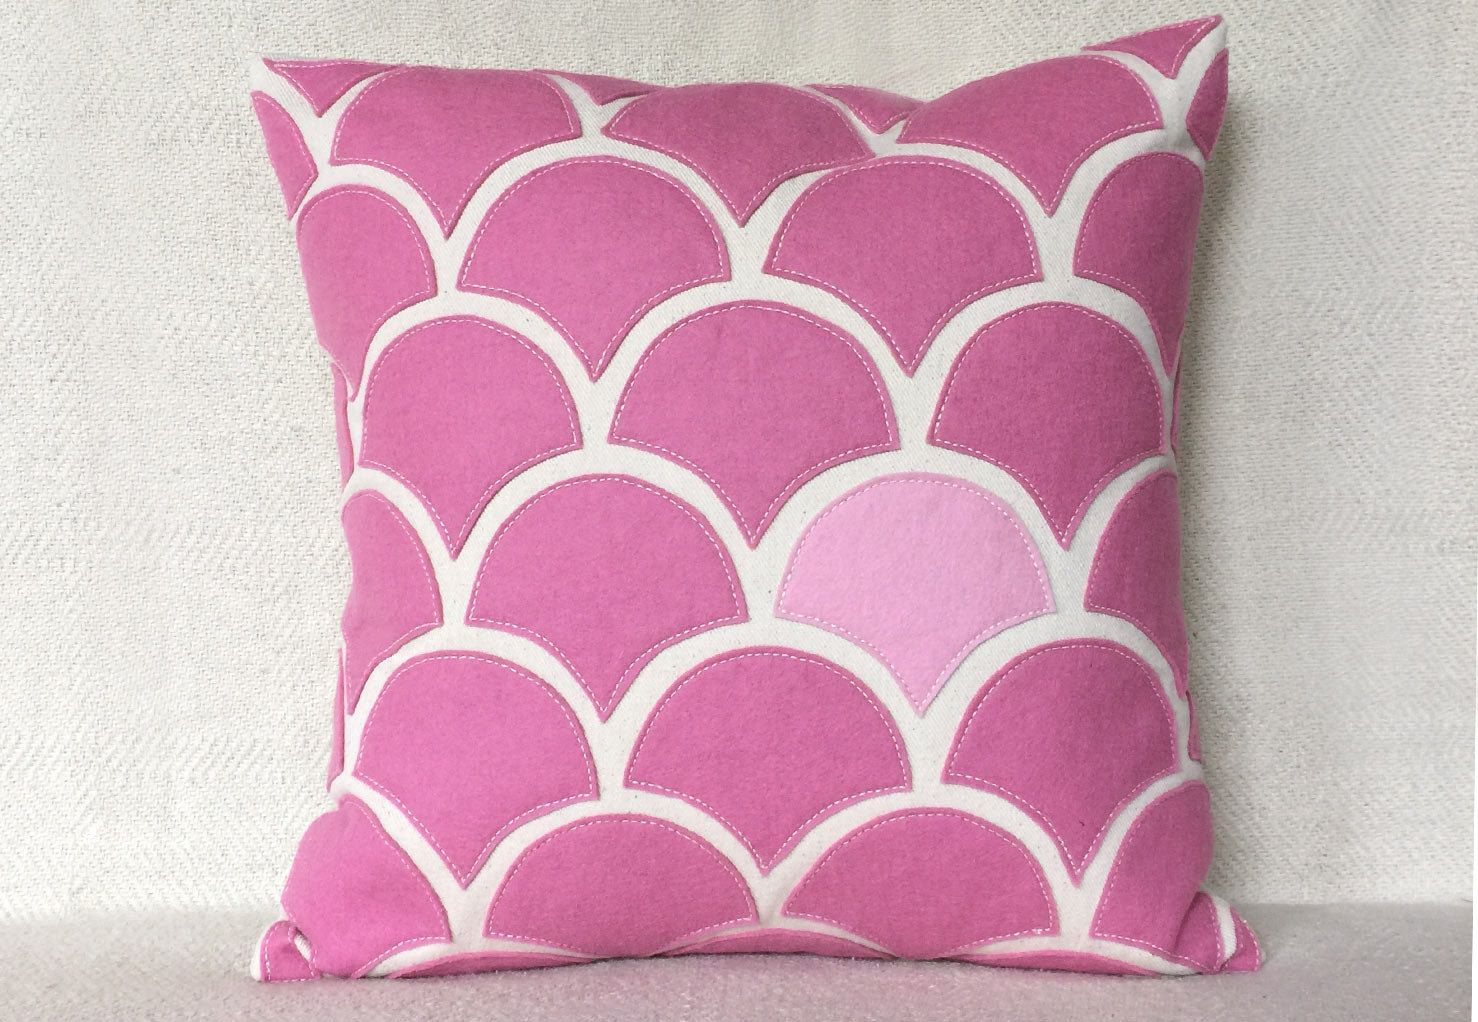 Pink wave pillow with wool felt applique on cotton canvas square